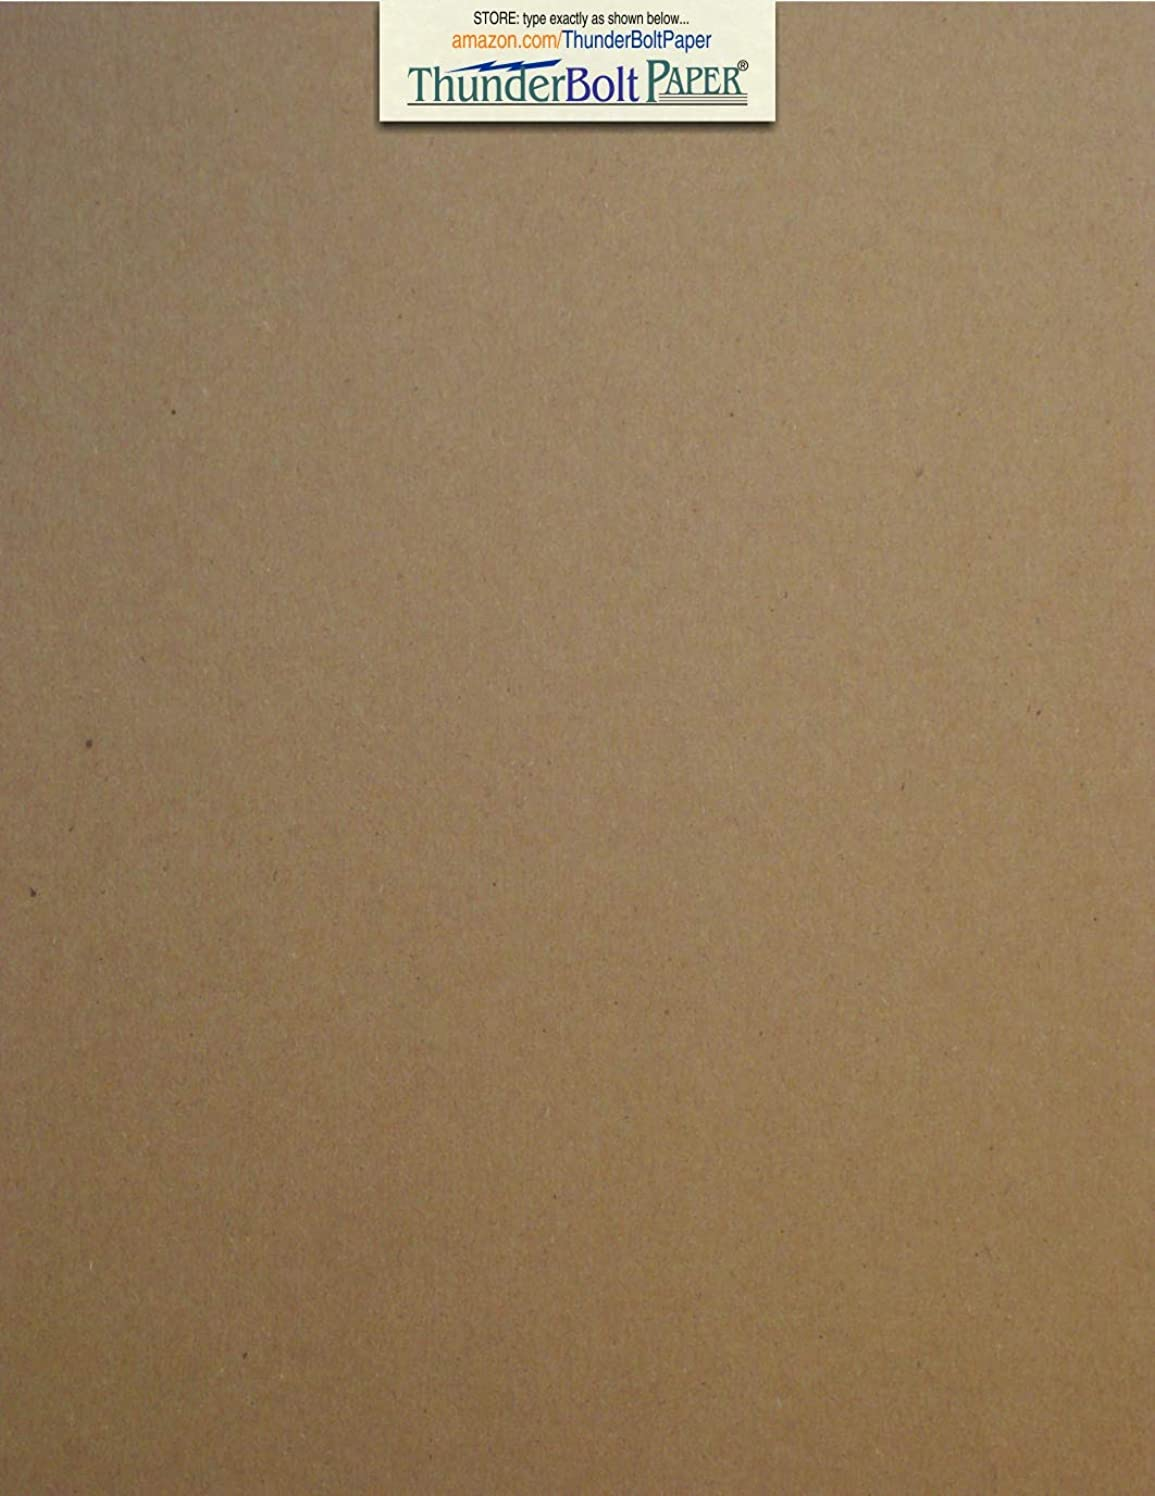 75 Sheets Chipboard 24pt (point) 9 X 12 Inches Light Weight Standard Photo|Frame and Sketch Pad Size Size .024 Caliper Thickness Cardboard Craft Packaging Brown Kraft Paper Board